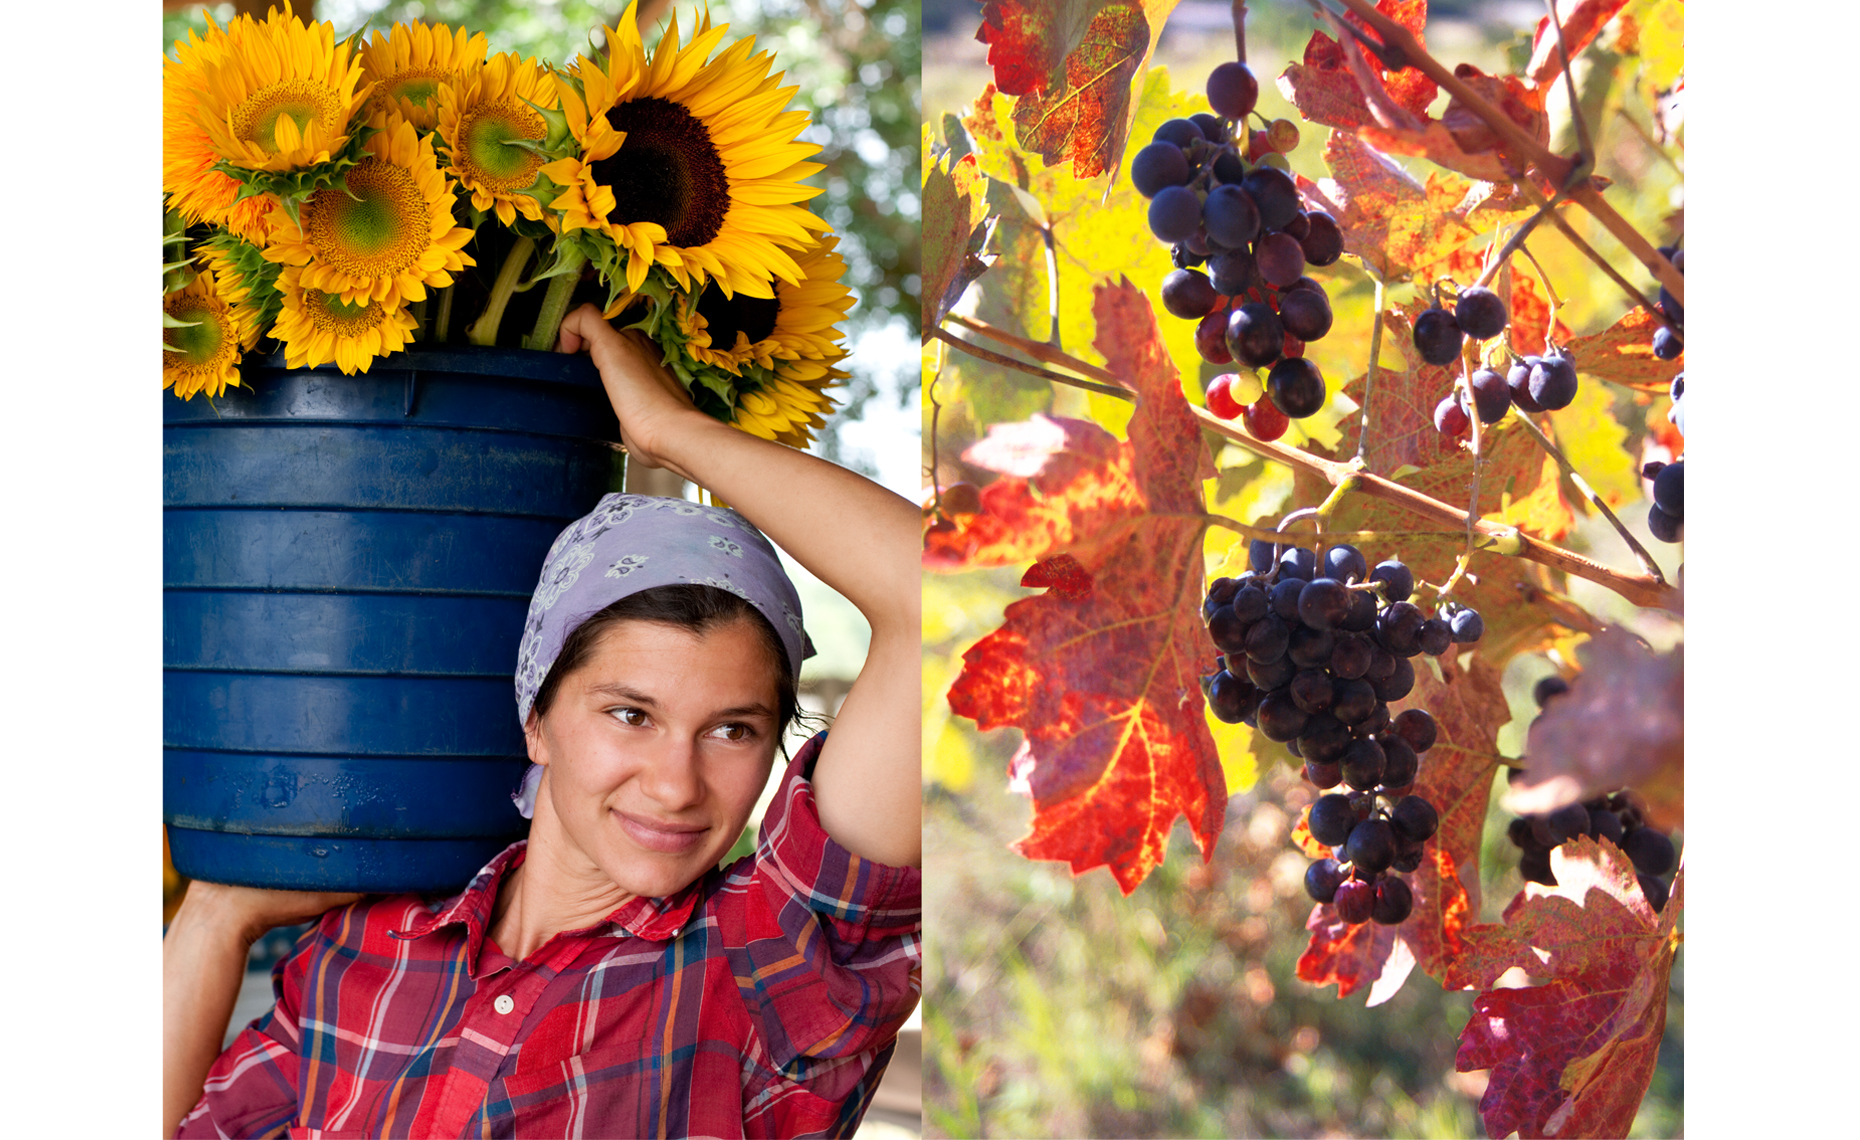 sunflower_maiden_grapes.jpg